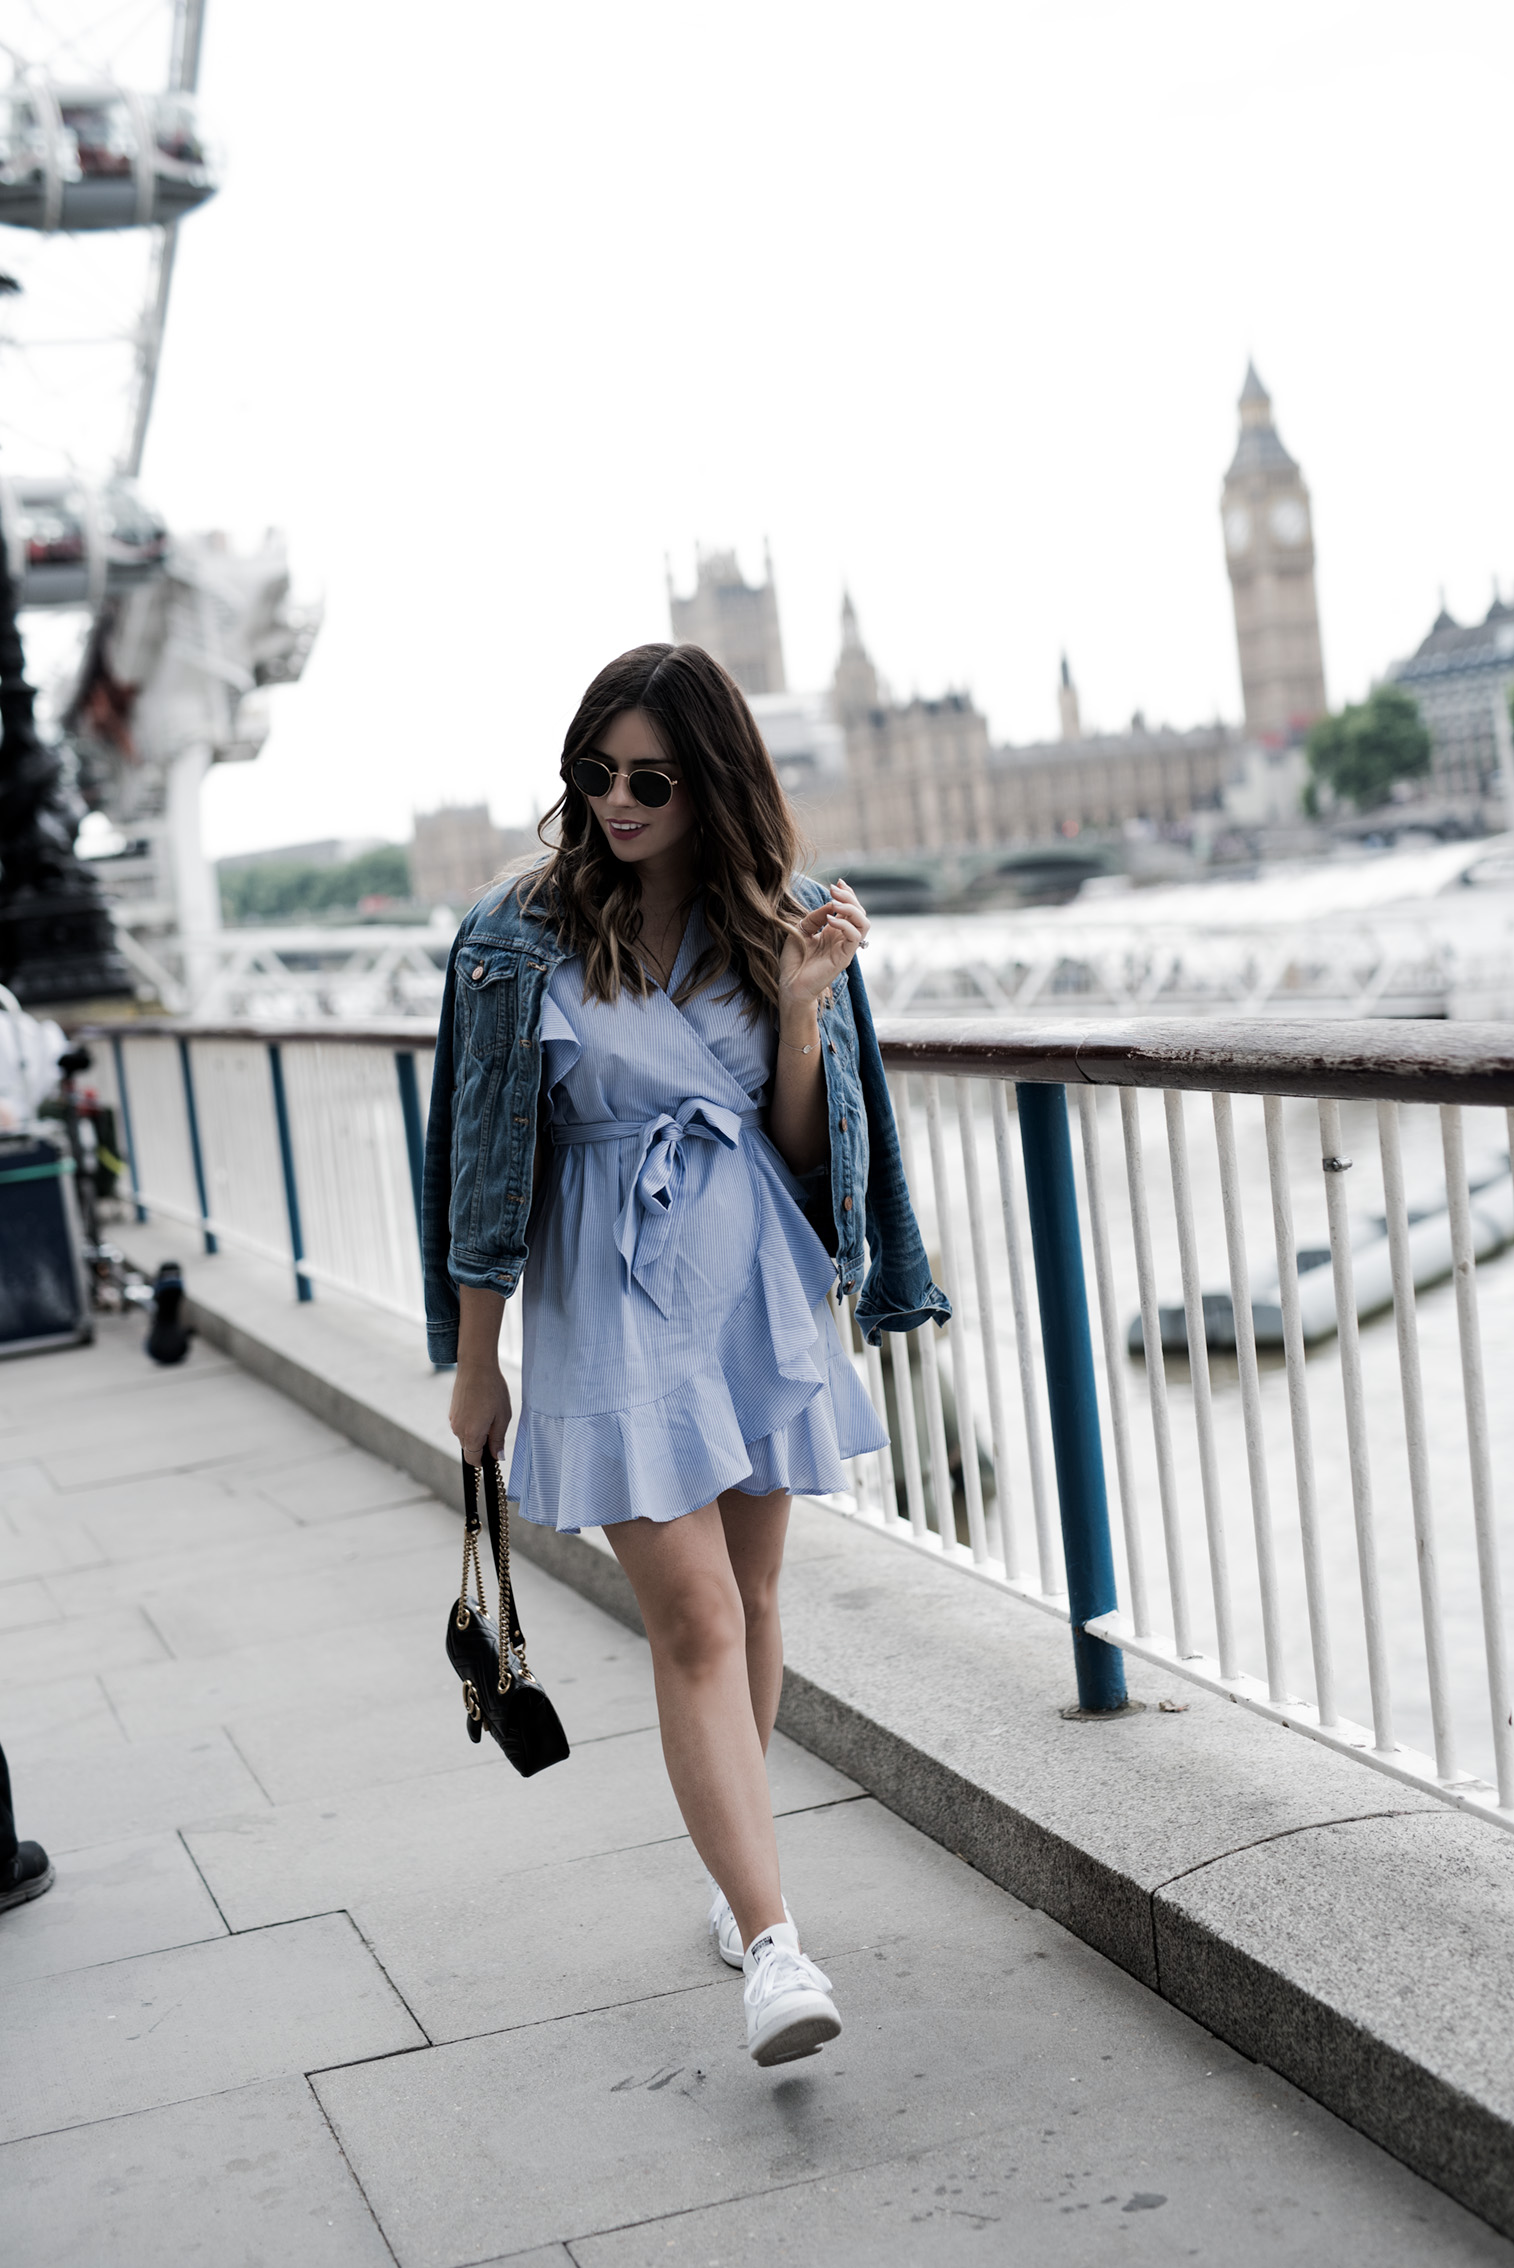 Tiffany Jais Houston fashion and lifestyle blogger | The London eye-what I wore, Gucci marmot bag, wrap dress, dresses with sneakers outfits, casual outfits, what to wear in London, Things to do in London,